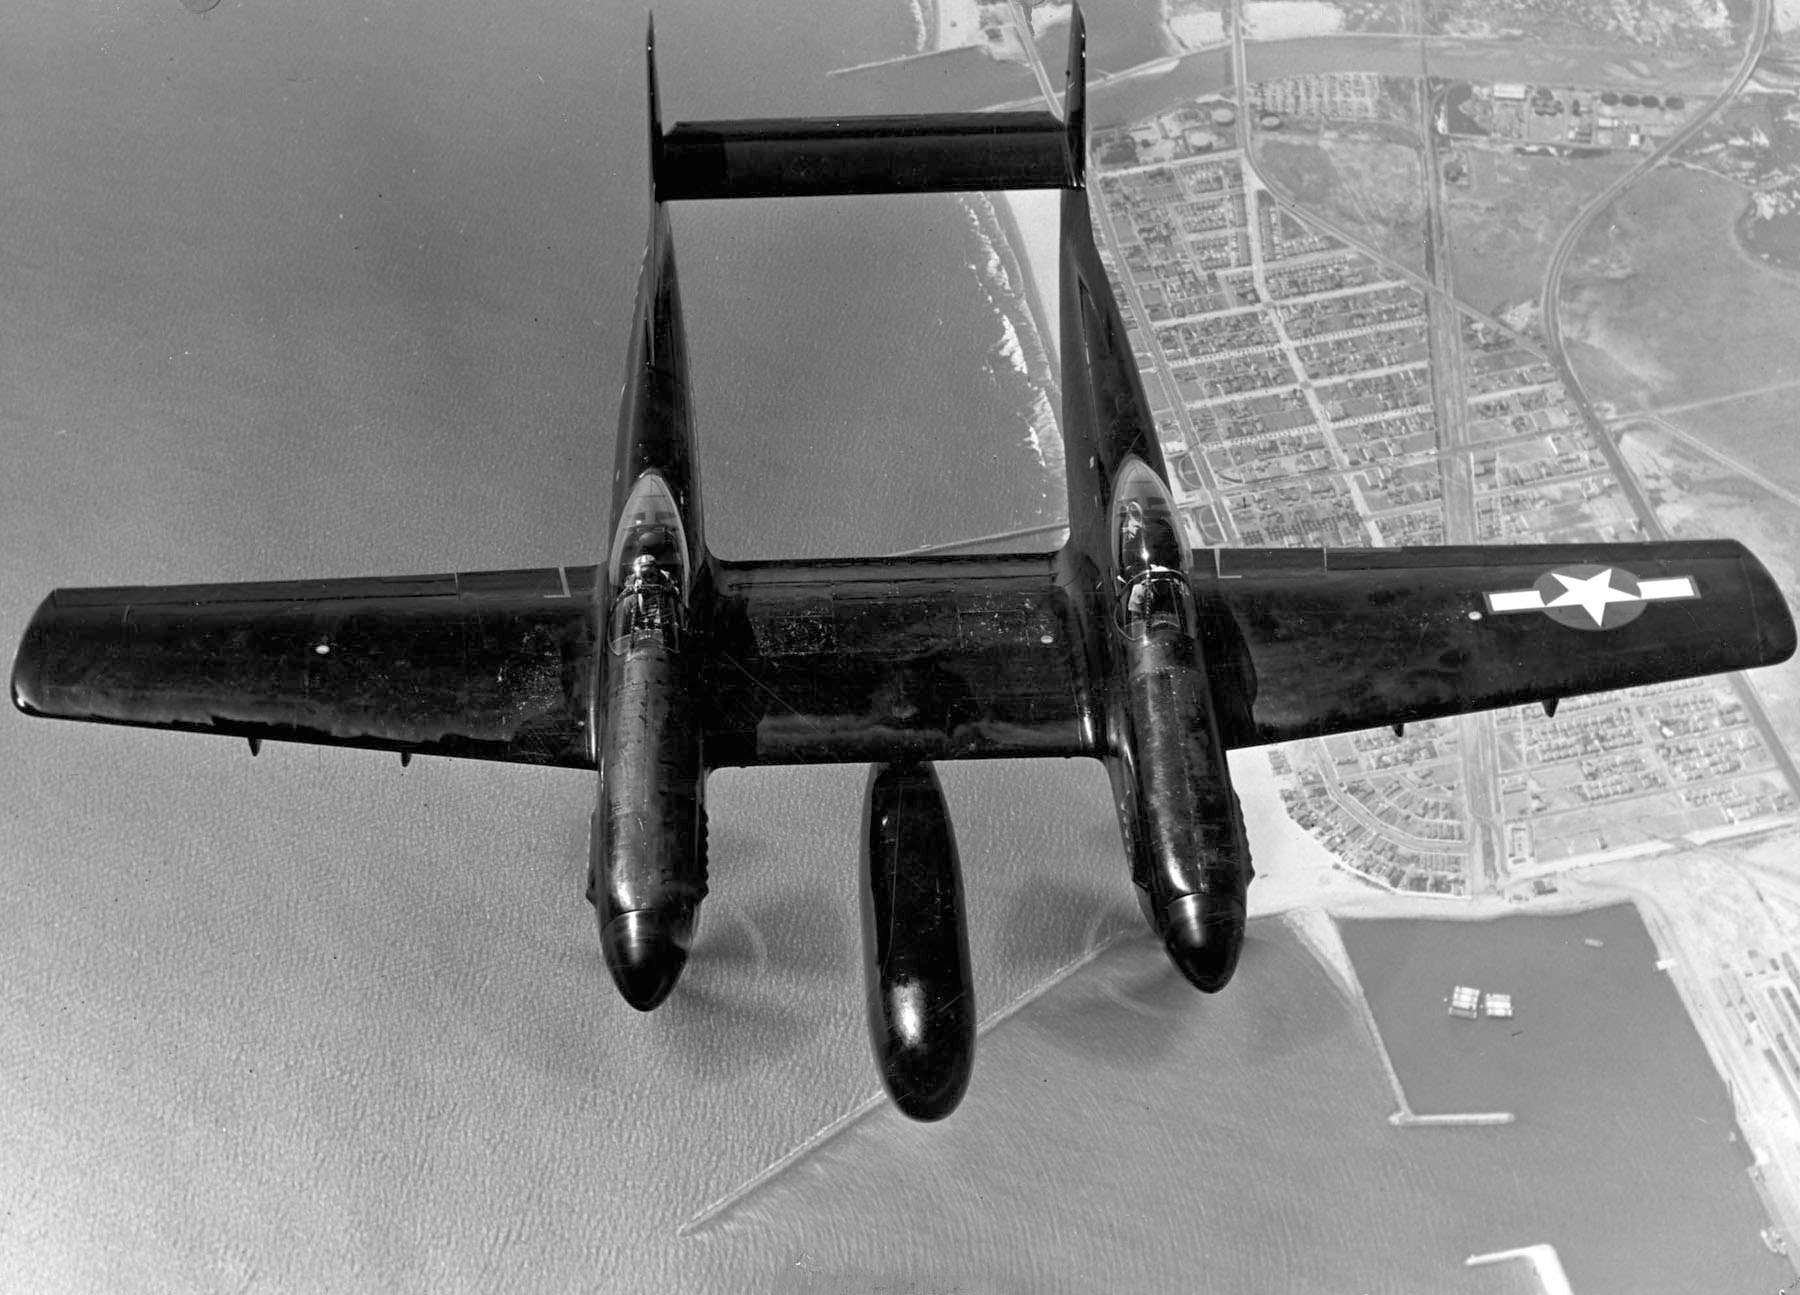 Figure 3. P-82C US Air Force Photo